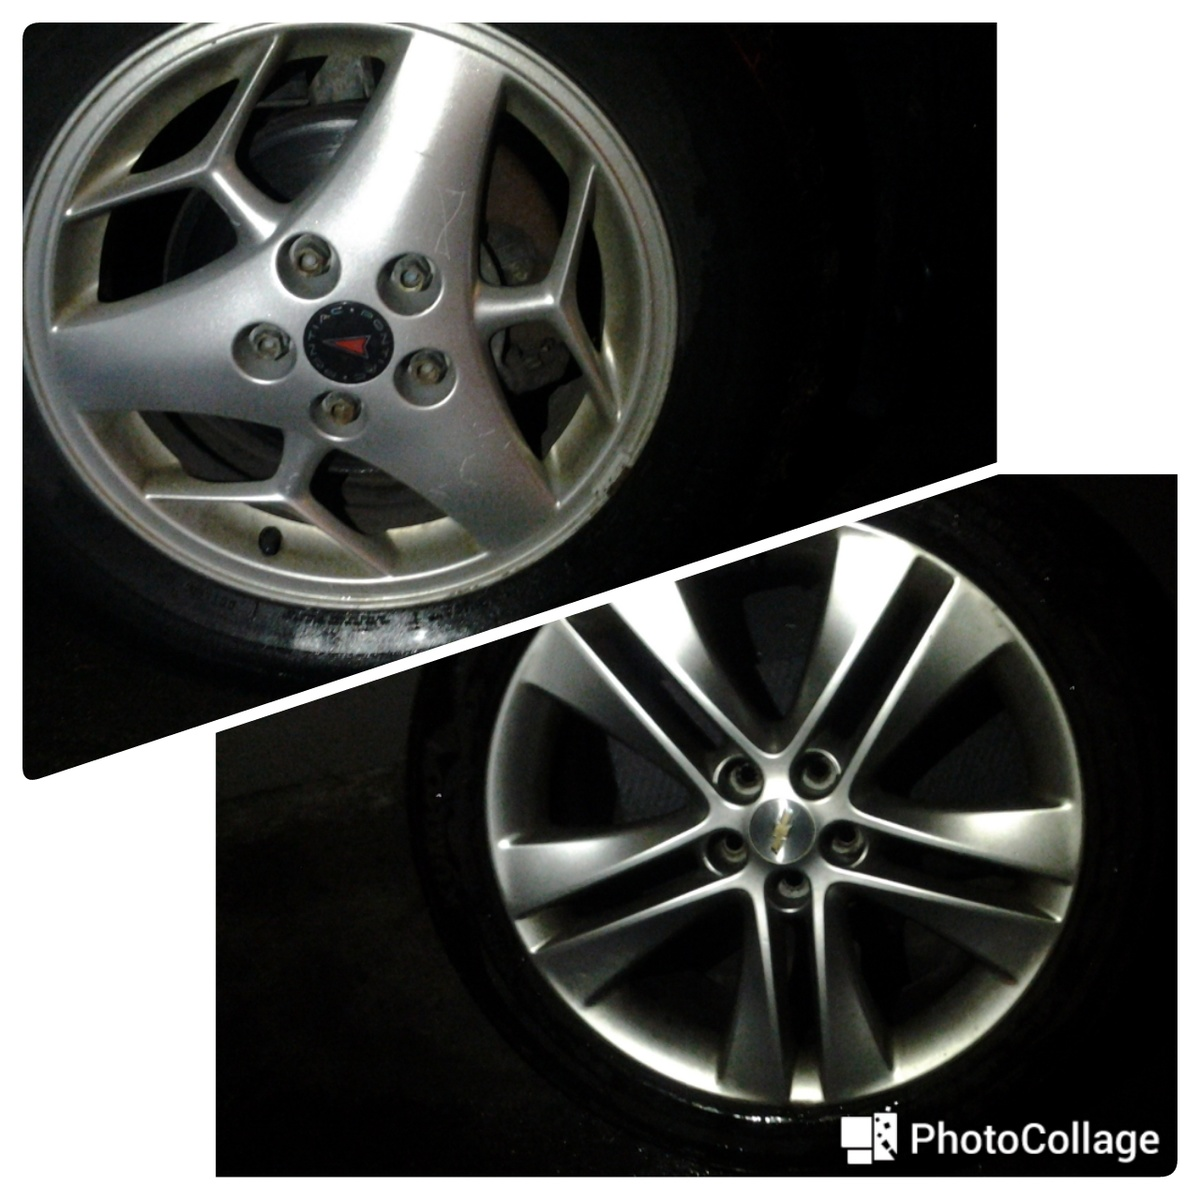 pontiac grand prix questions would this tire and rim fit my 2002 cargurus. Black Bedroom Furniture Sets. Home Design Ideas